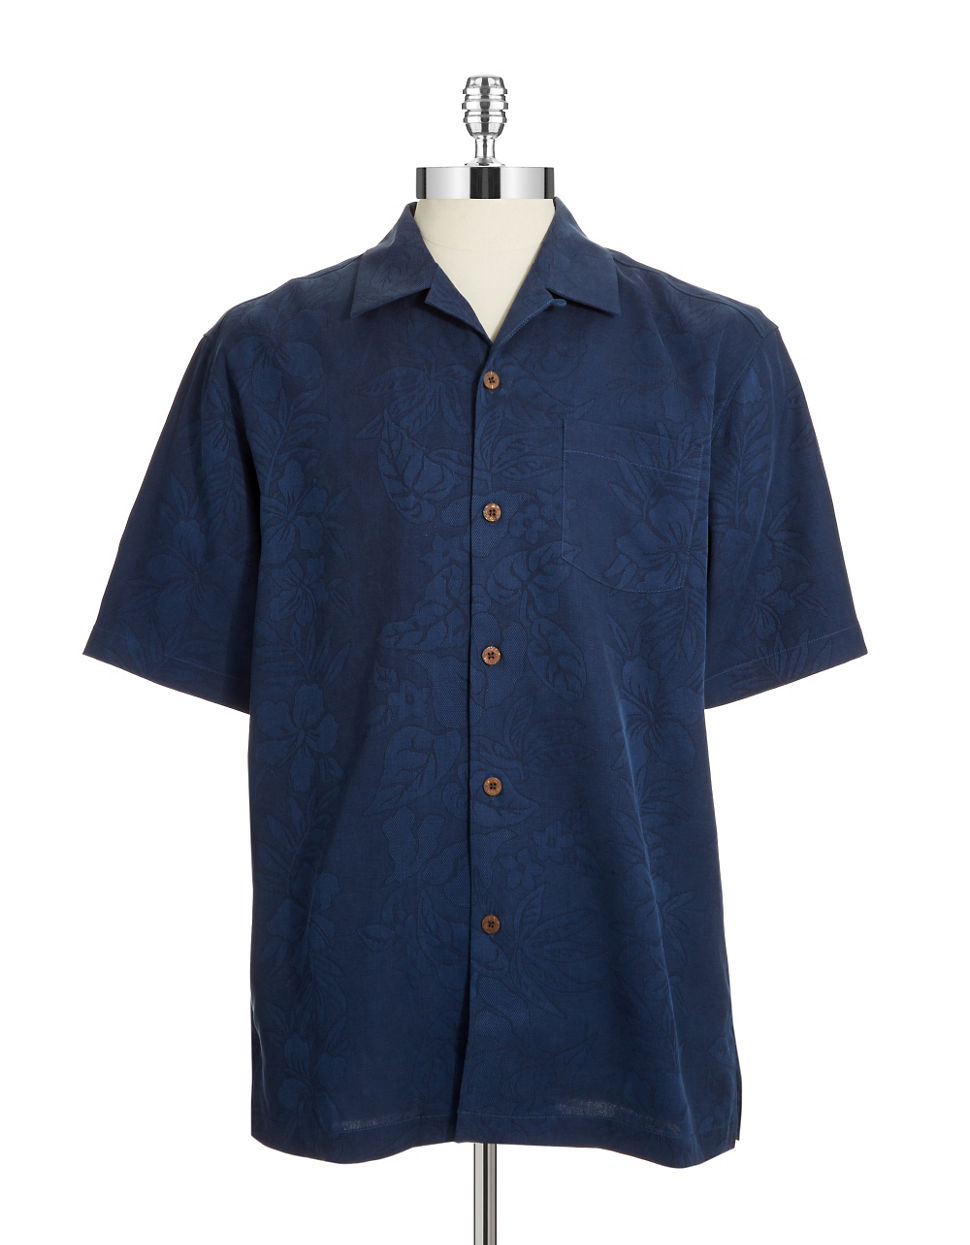 Tommy bahama tropical print sportshirt in blue for men for Tommy bahama florida shirt